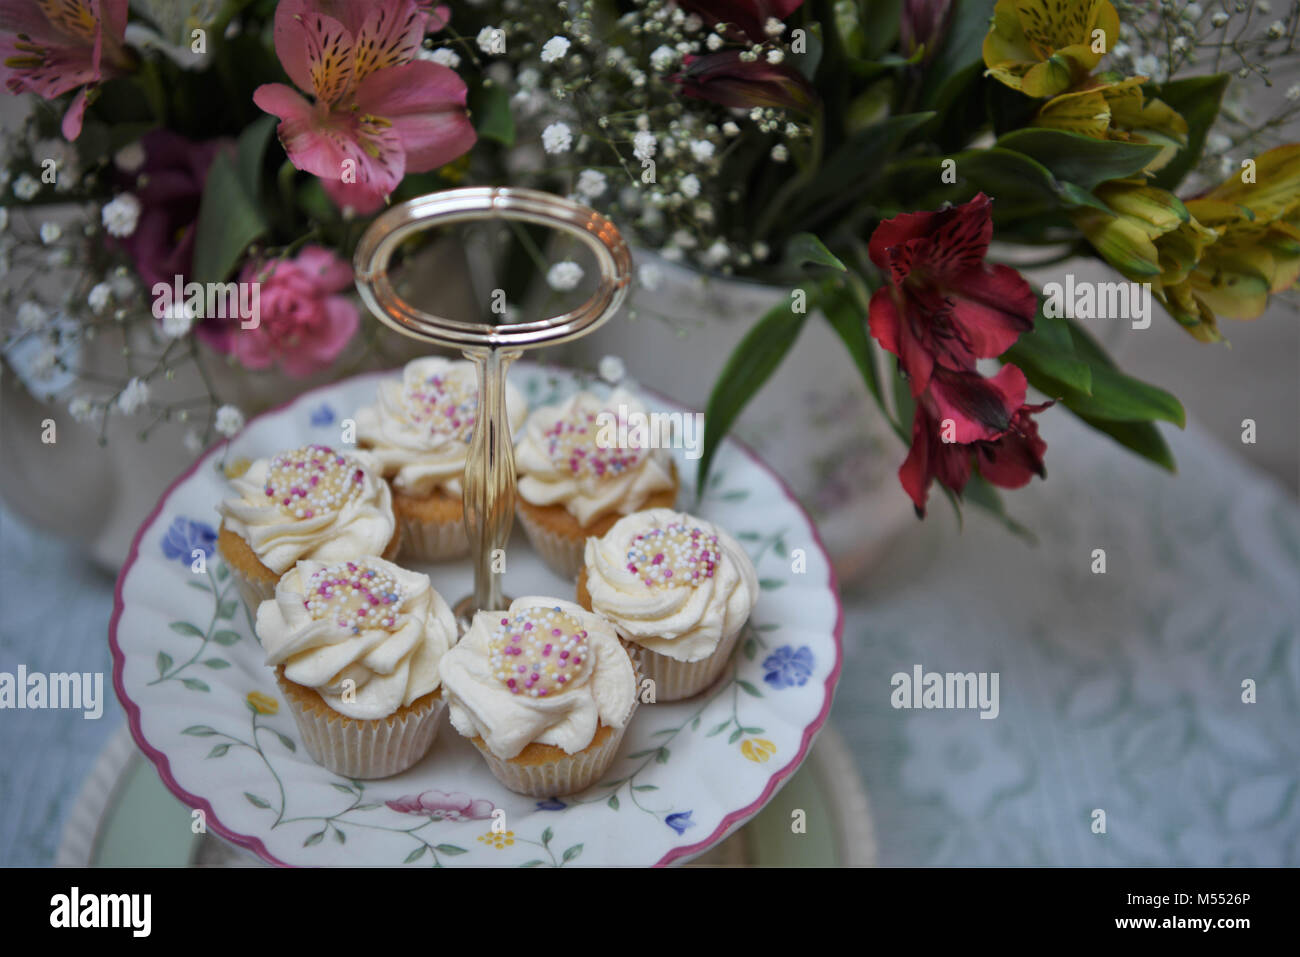 food of cupcakes on a vintage cake stand with fresh flowers - Stock Image